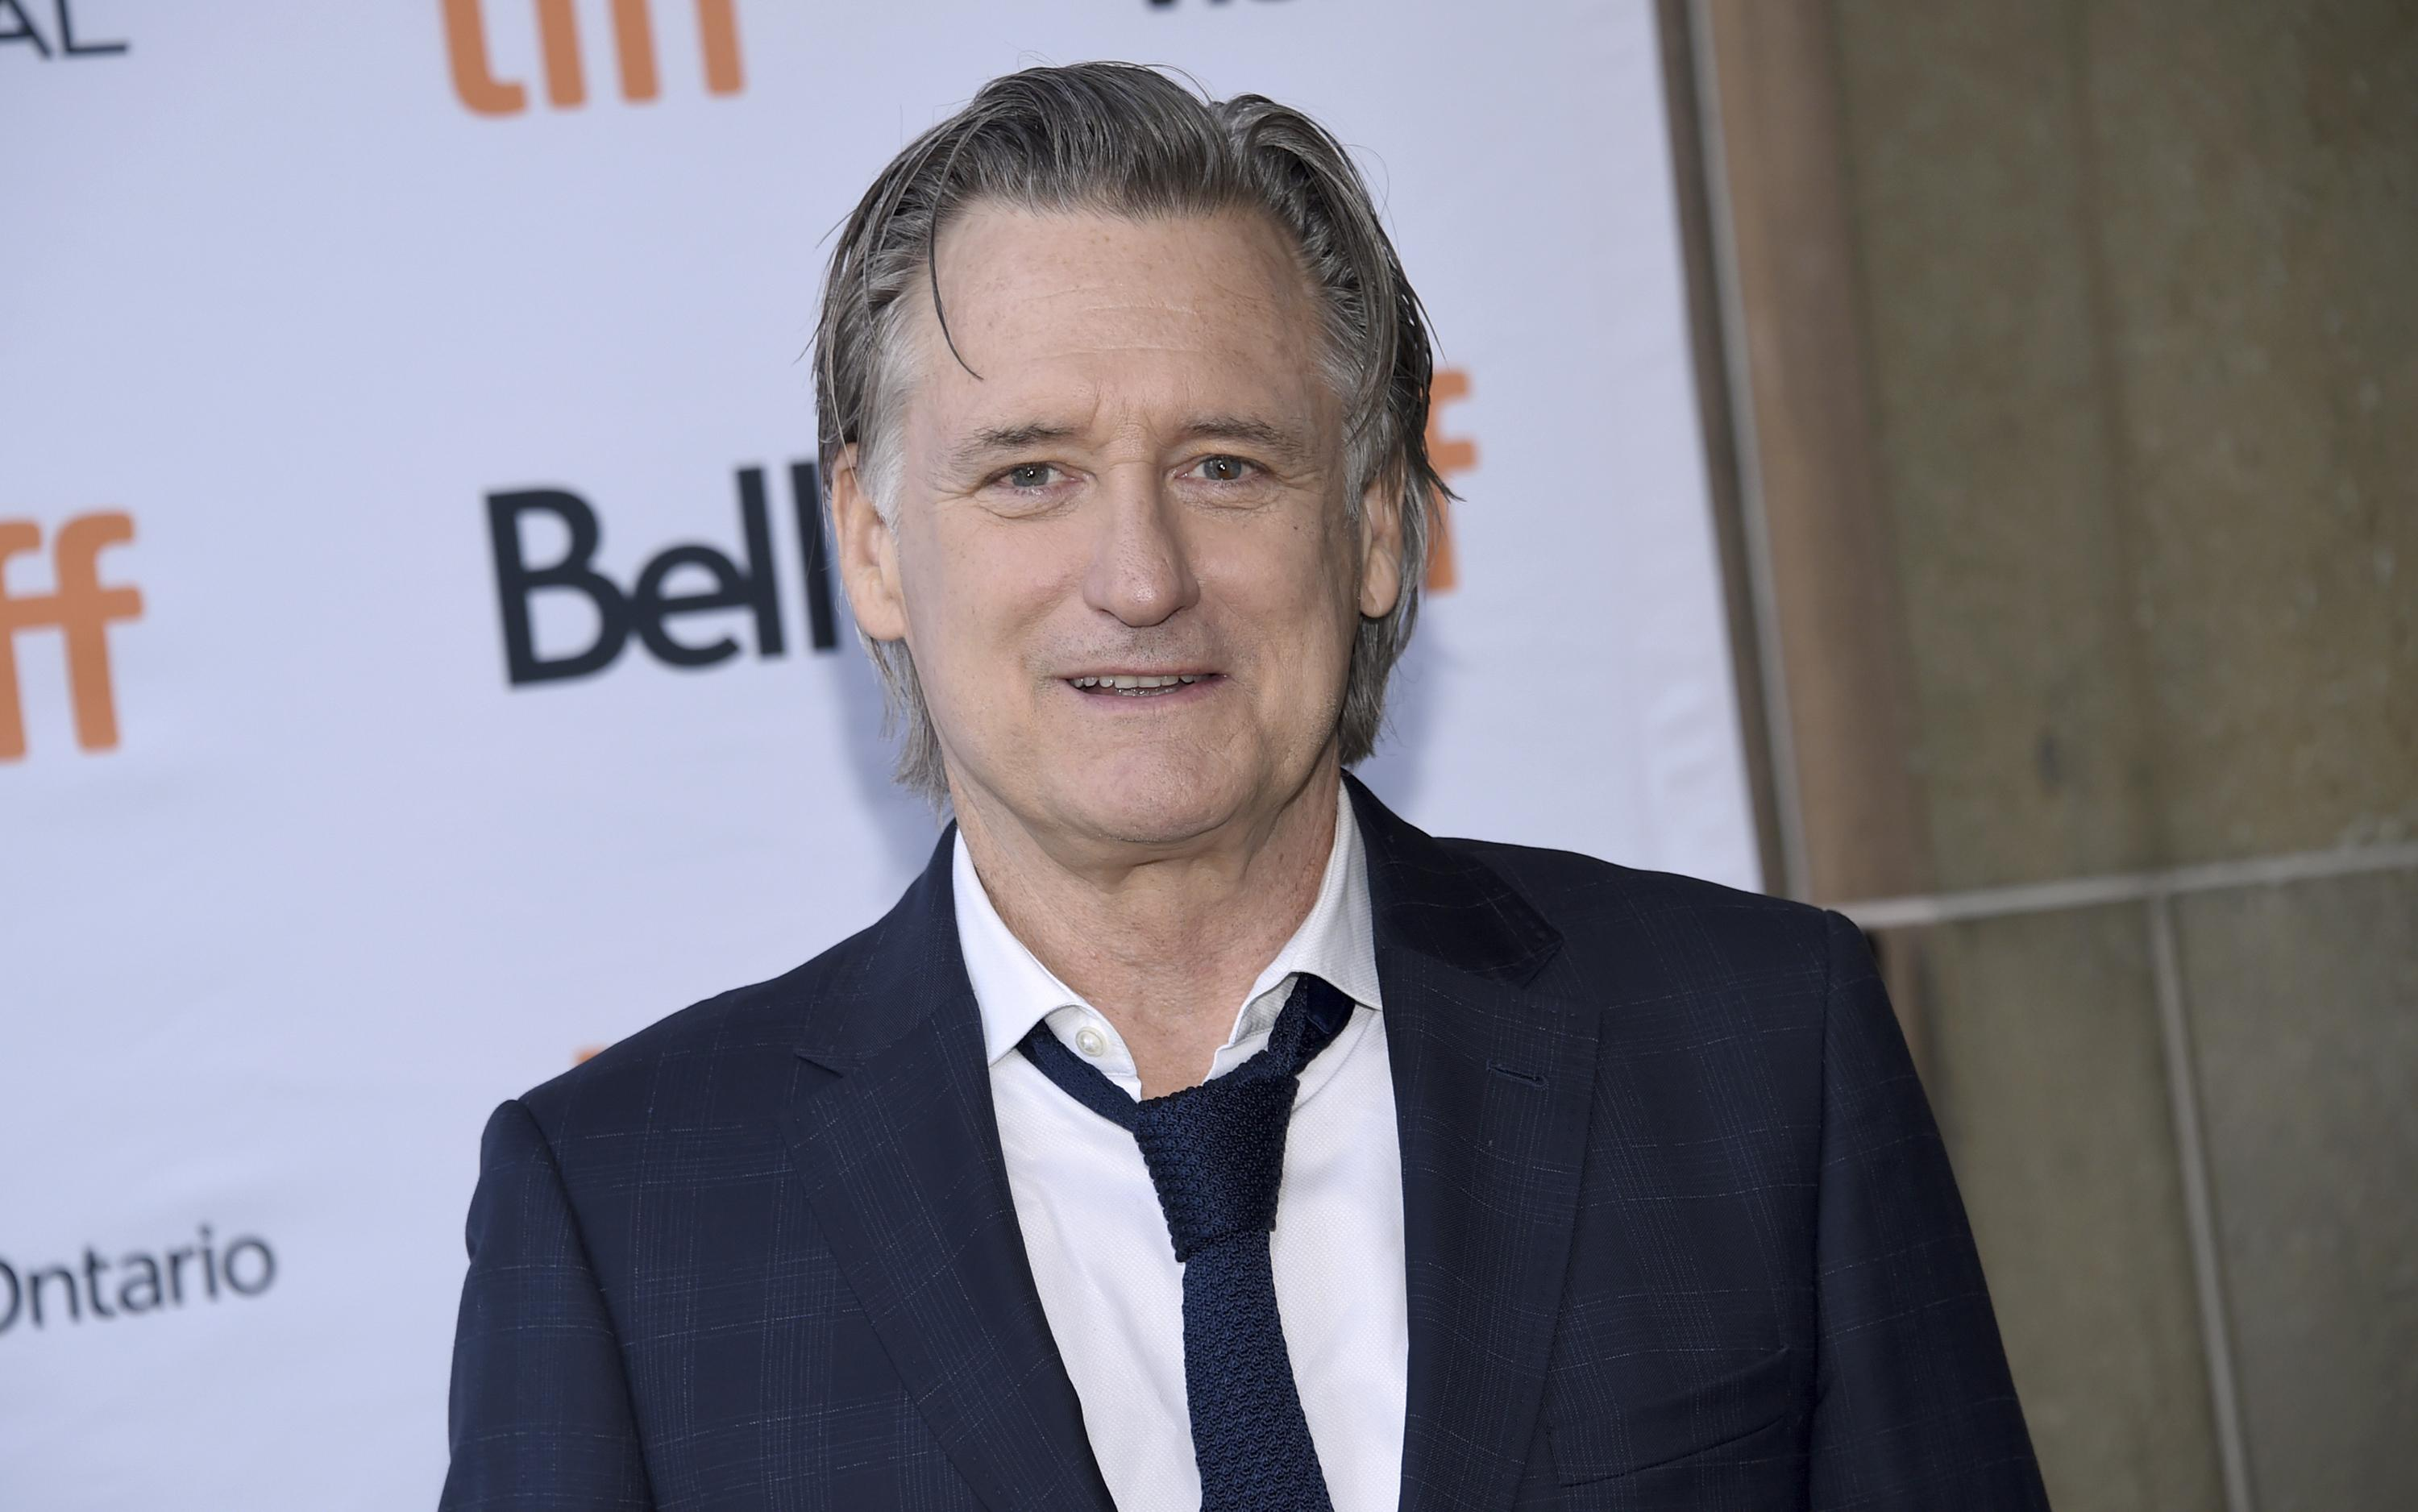 Oops! Actor Bill Pullman accepts, then breaks film award ...